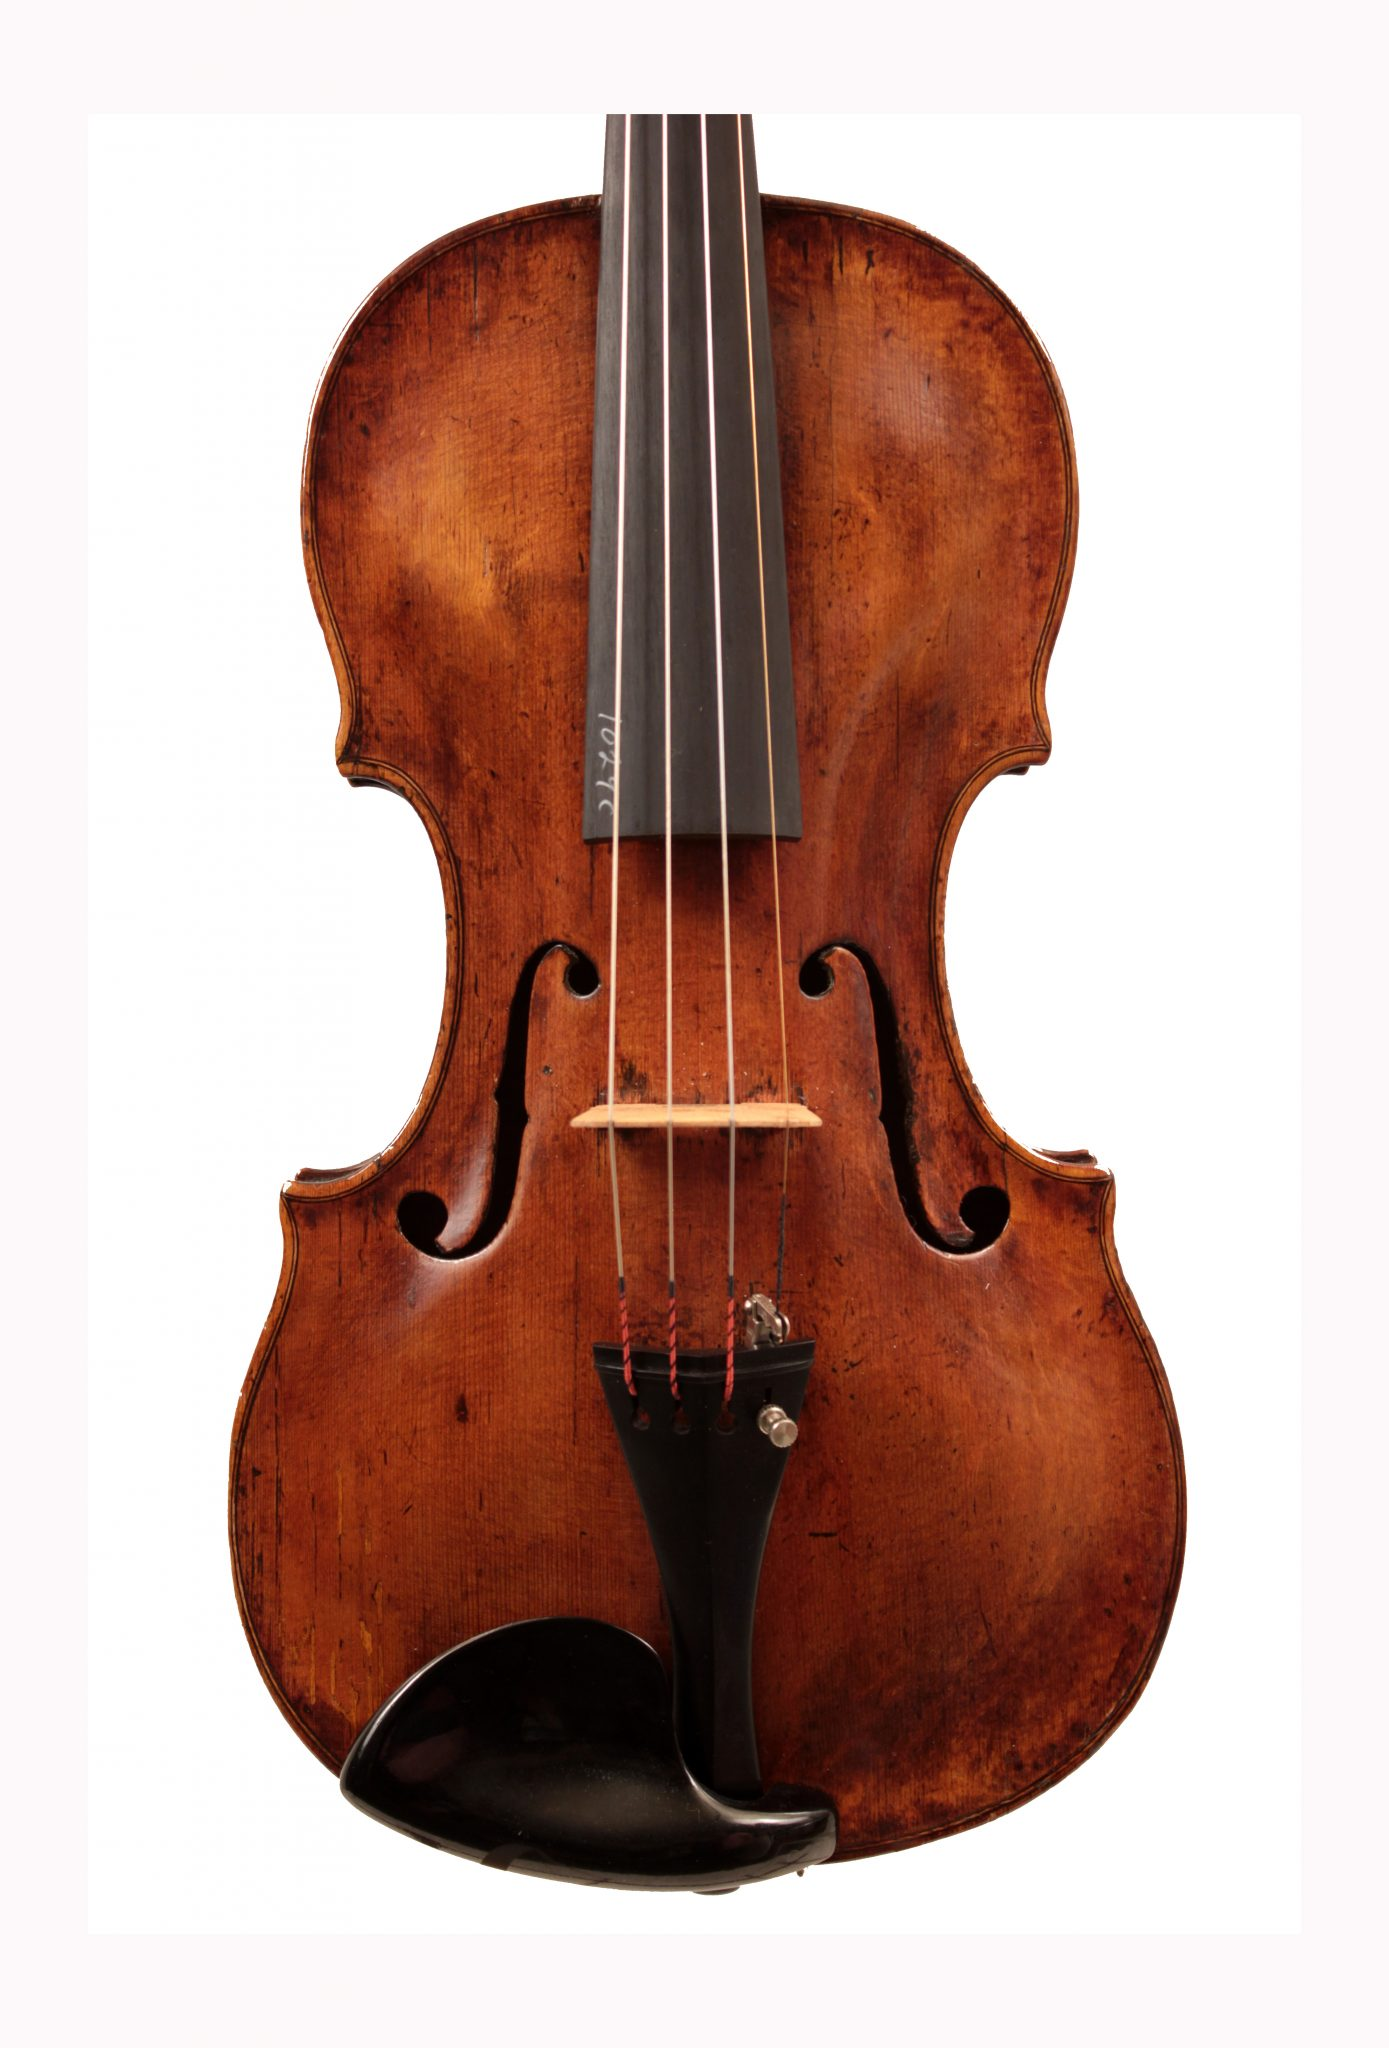 Violin by Ignaz Penzl c1770 for sale at Bridgewood and Neitzert London